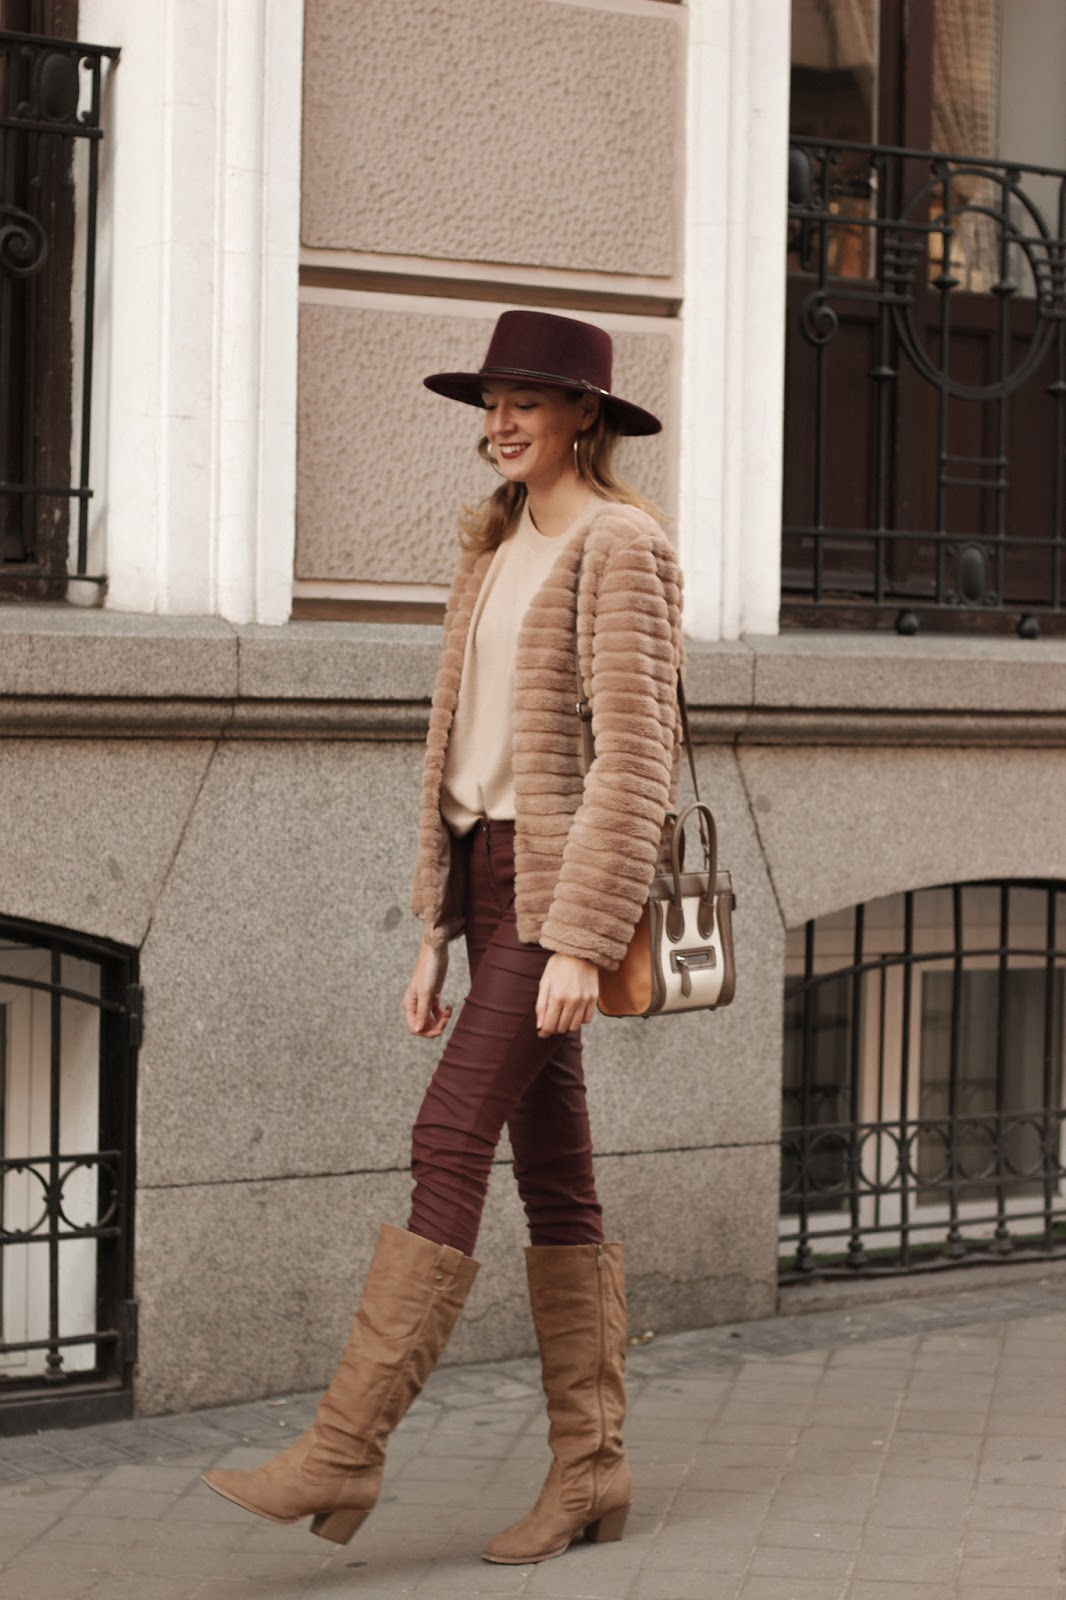 fluffly-jacket-burgundy-pants-over-the-knee-boots-street-style